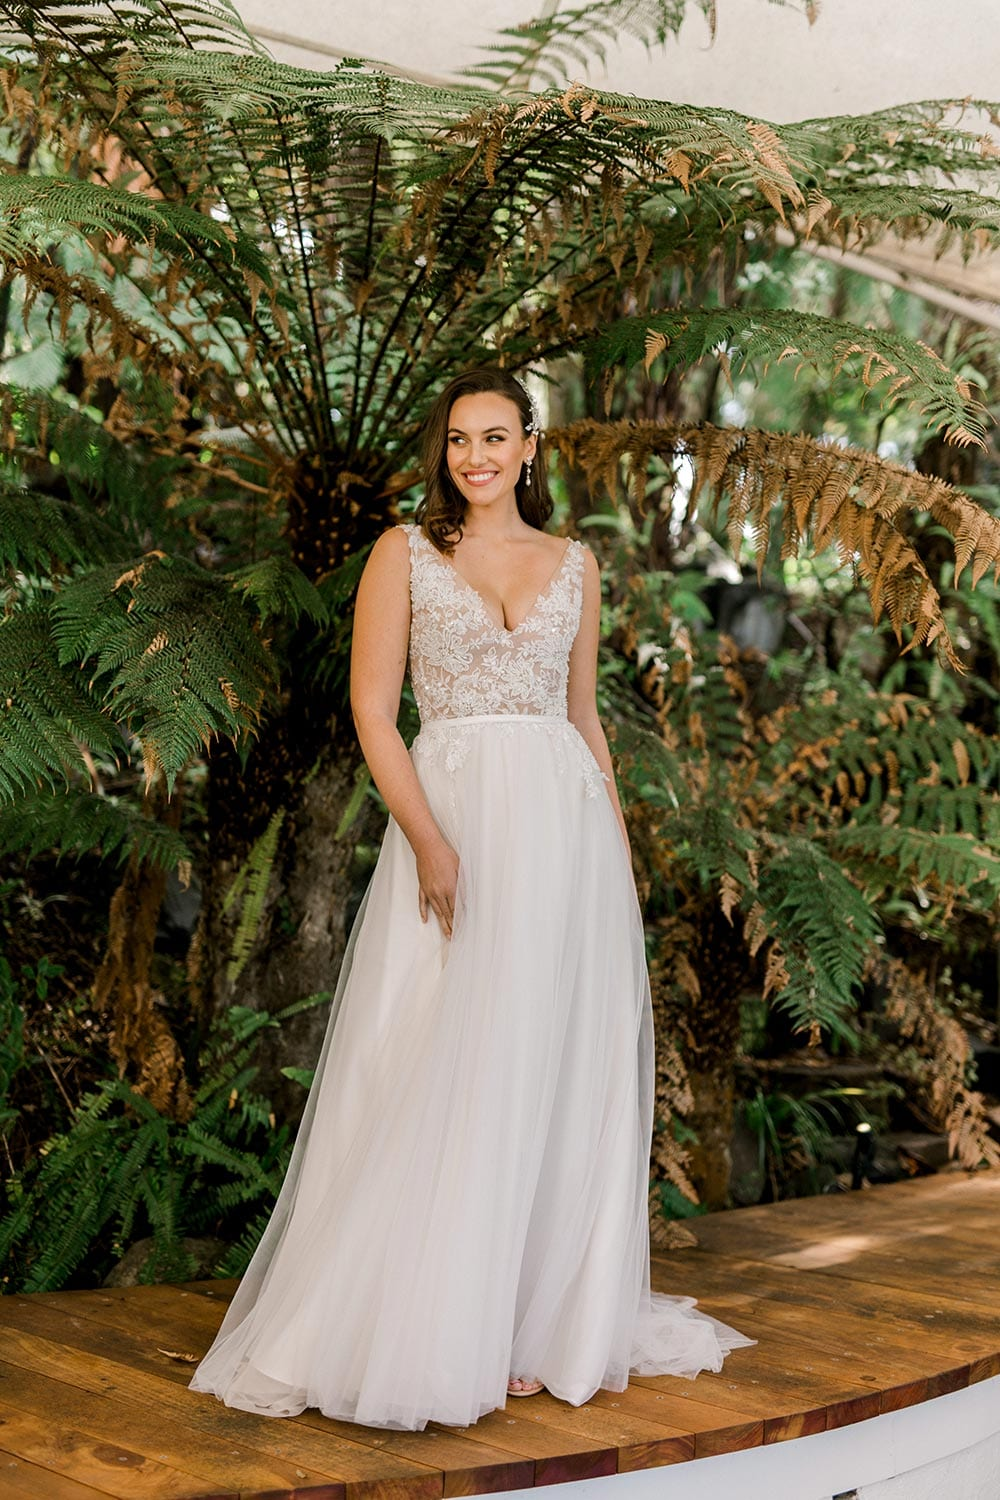 Vivian Wedding gown from Vinka Design - A stunning gown with a deep V-neckline on both the front & back. Fitted semi-sheer nude bodice embellished with a beaded floral lace, a soft layered tulle skirt. Worn in conservatory with fern background, hands to the side.